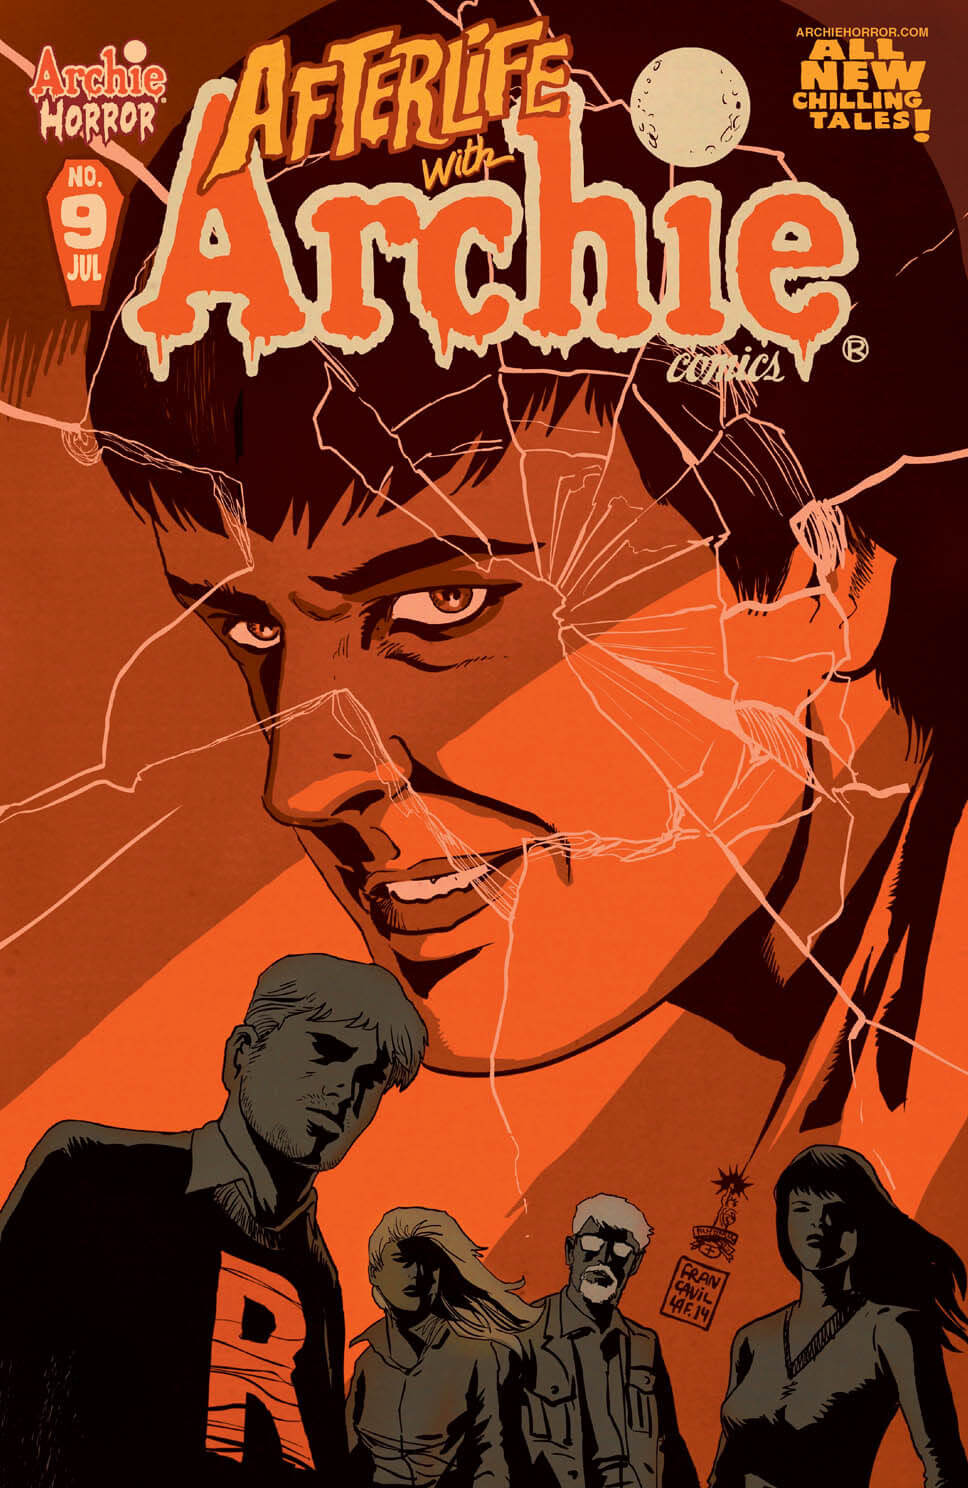 AFTERLIFE WITH ARCHIE #9 - Cover by Franceso Francavilla